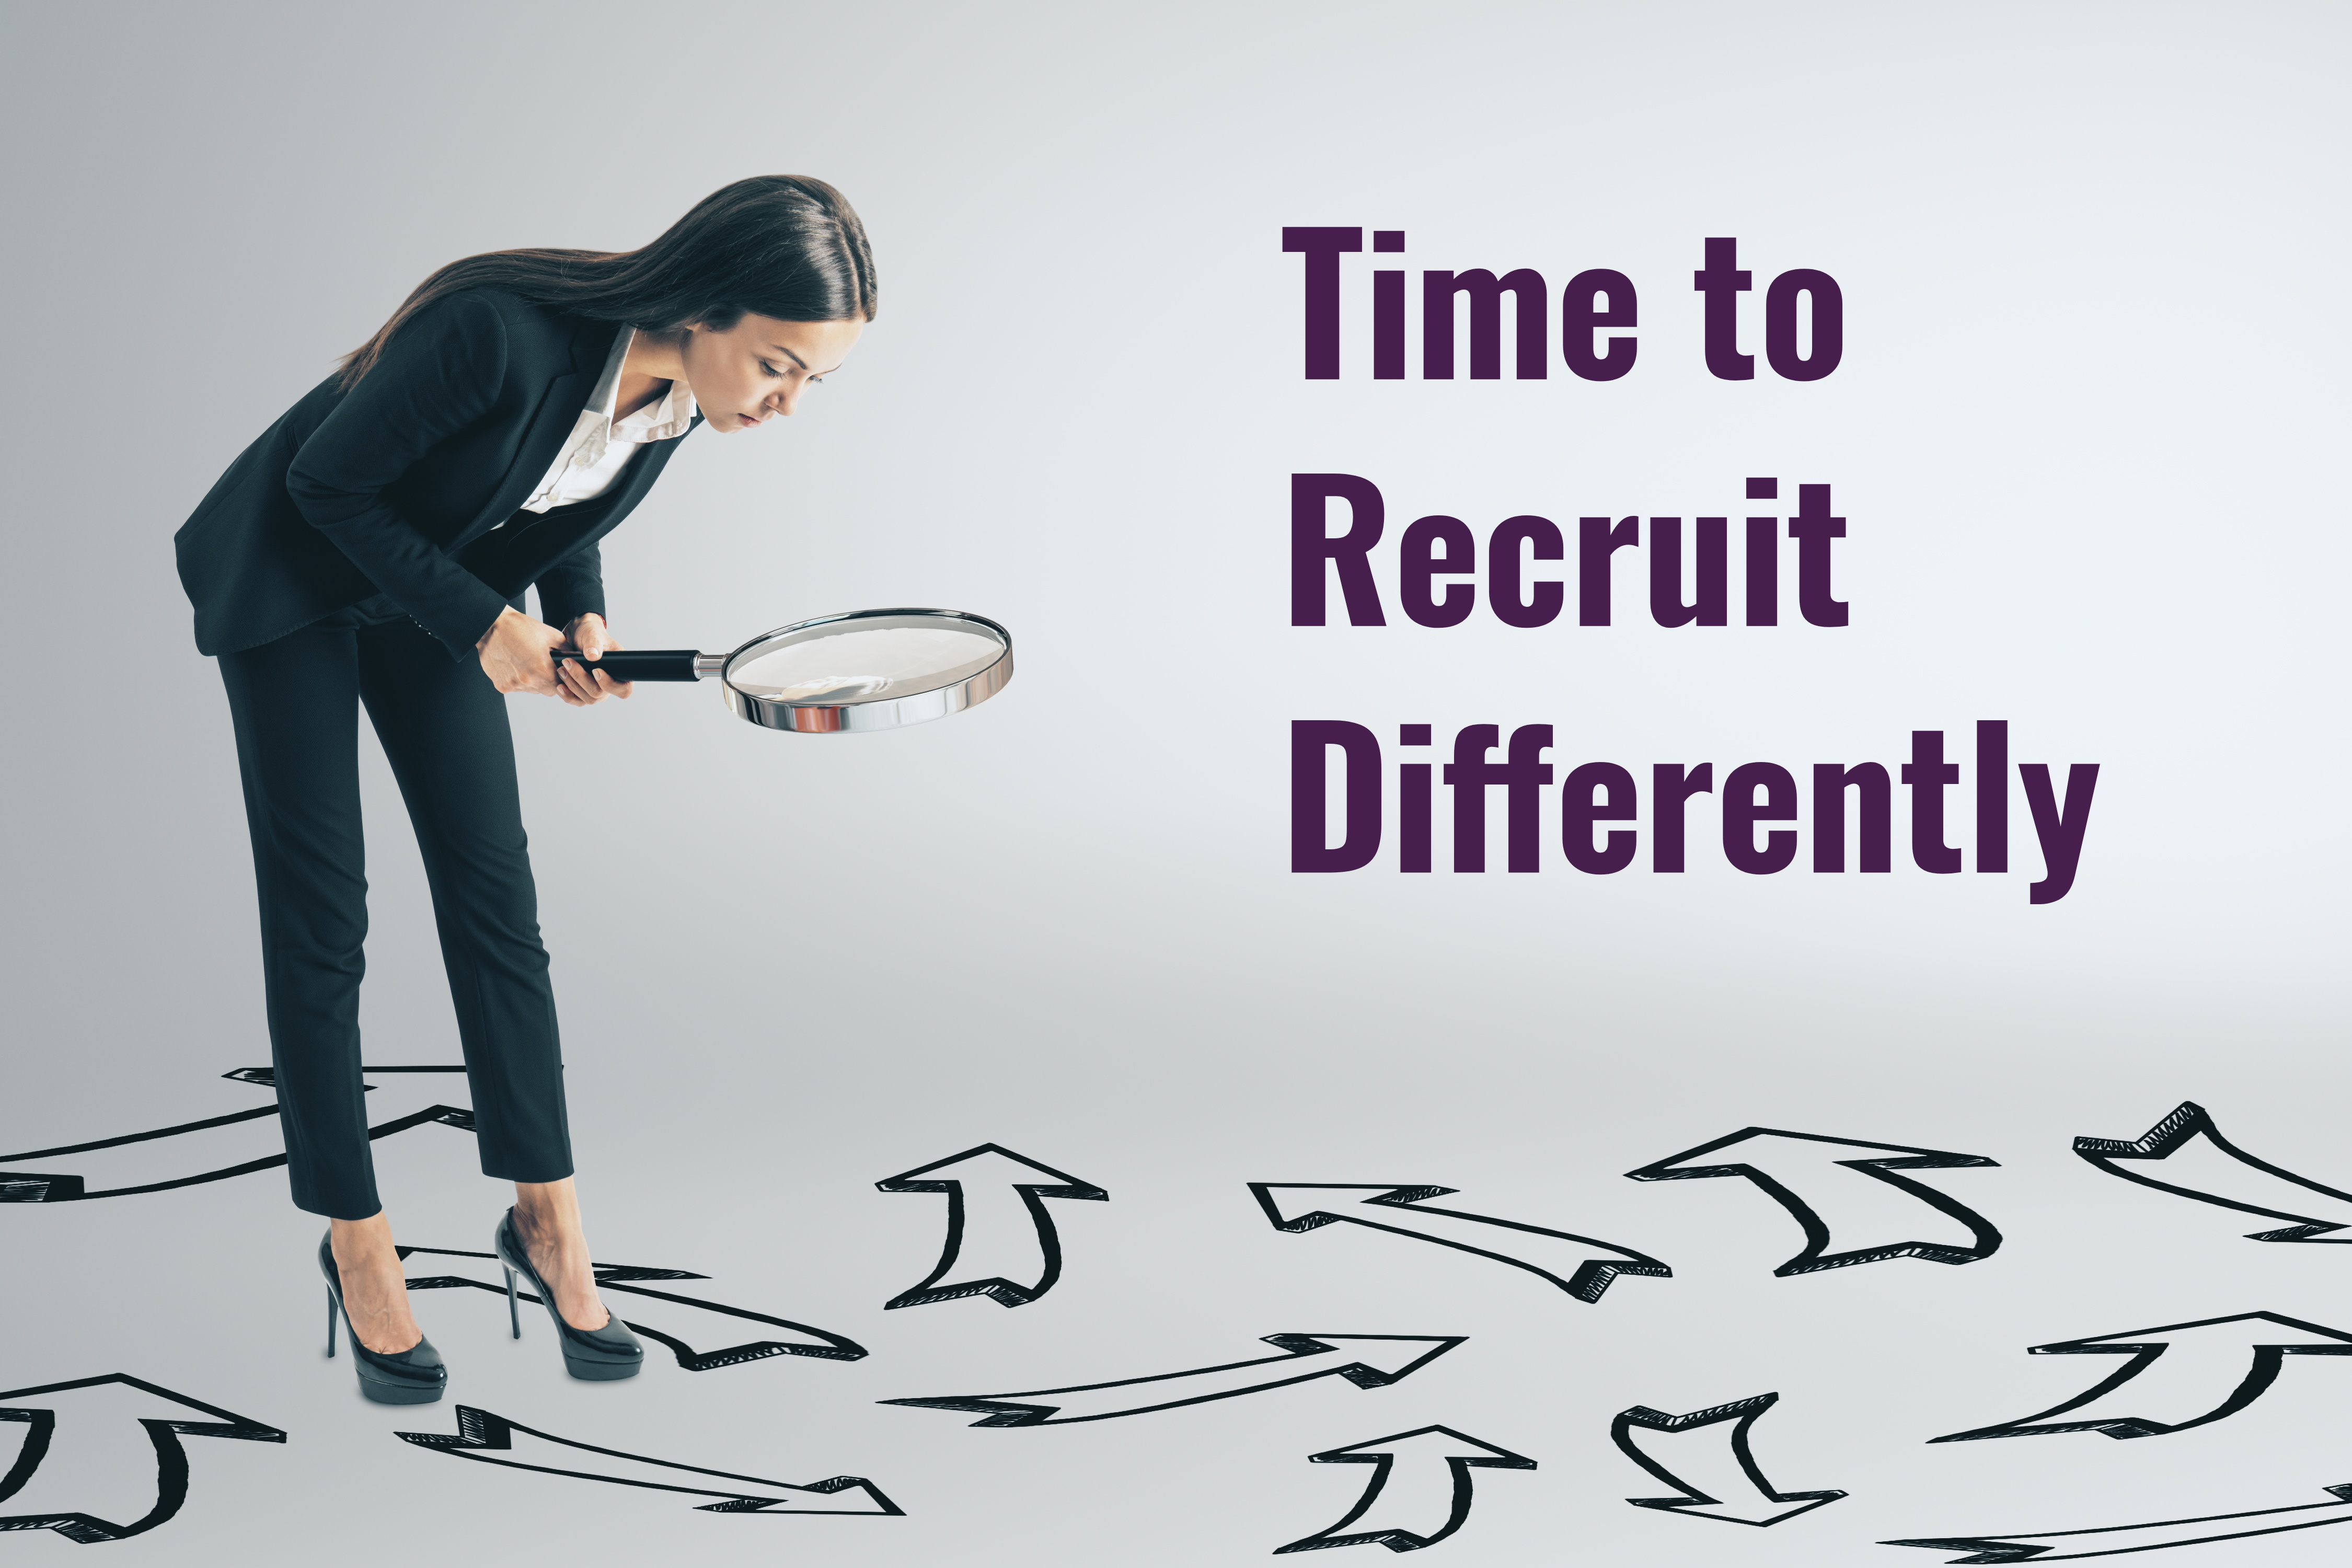 Time to recruit differently